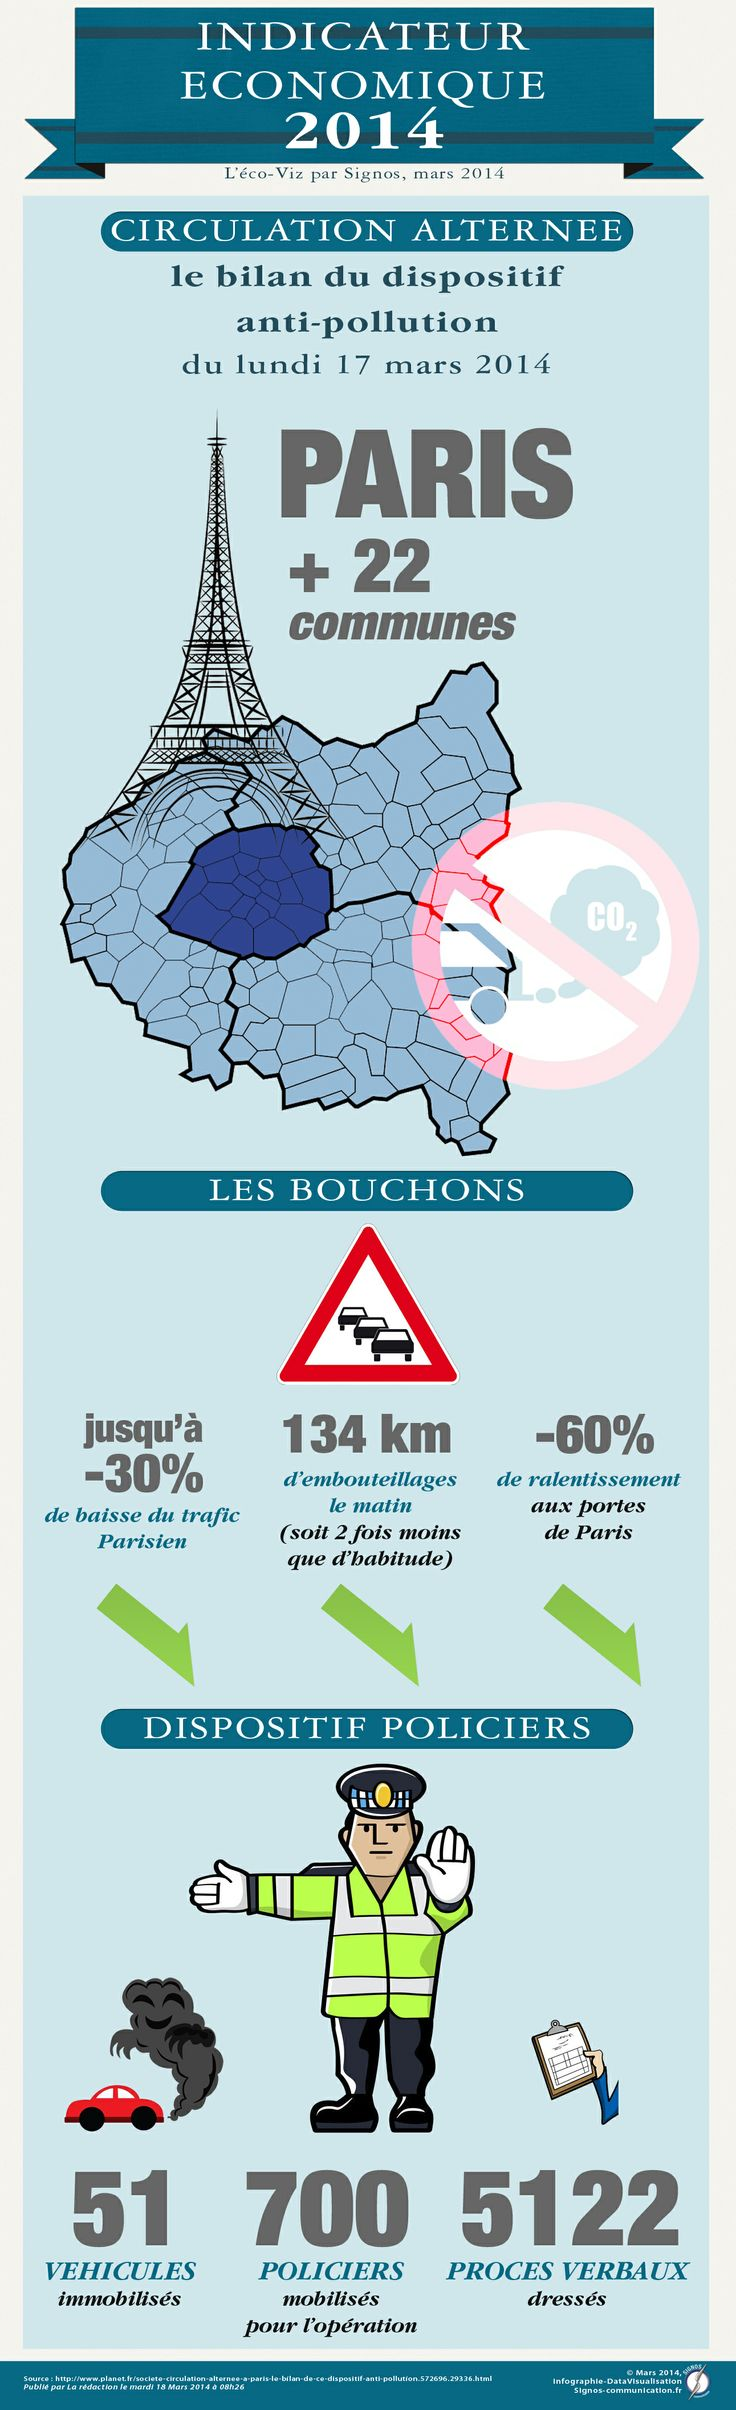 INFOGRAPHIE. L'éco-Viz de mars 2014. Circulation alternée à Paris : le bilan de ce dispositif anti-pollution du lundi 17 mars 2014. © www.signos-communication.fr